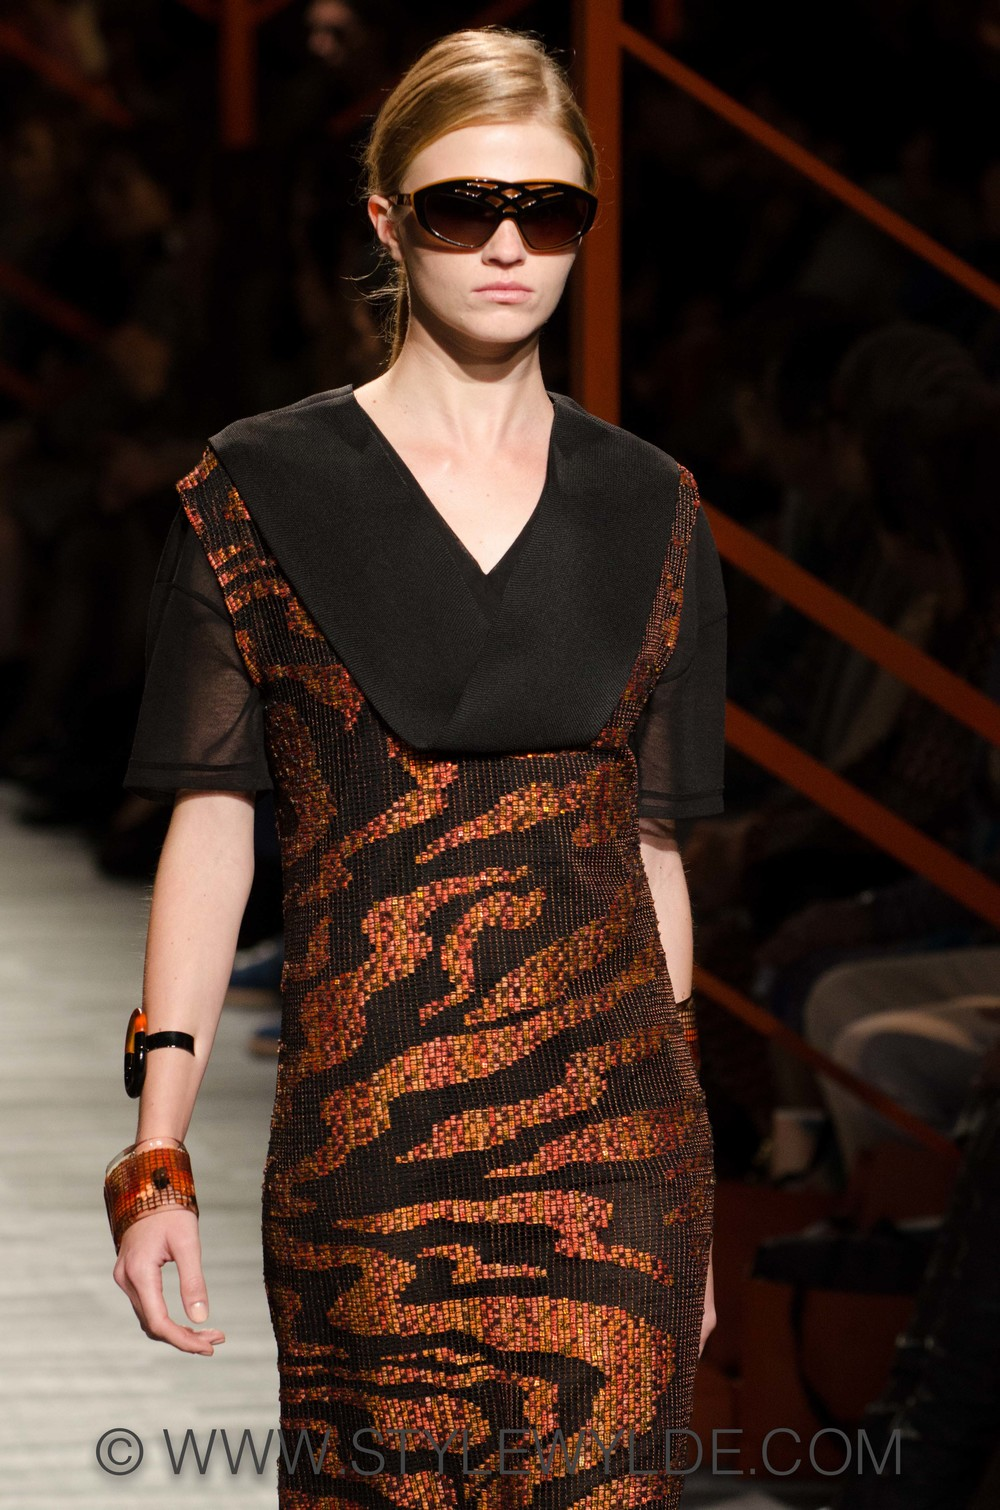 STYLEWYLDE_Missoni_SS2014 (1 of 1)-17.jpg